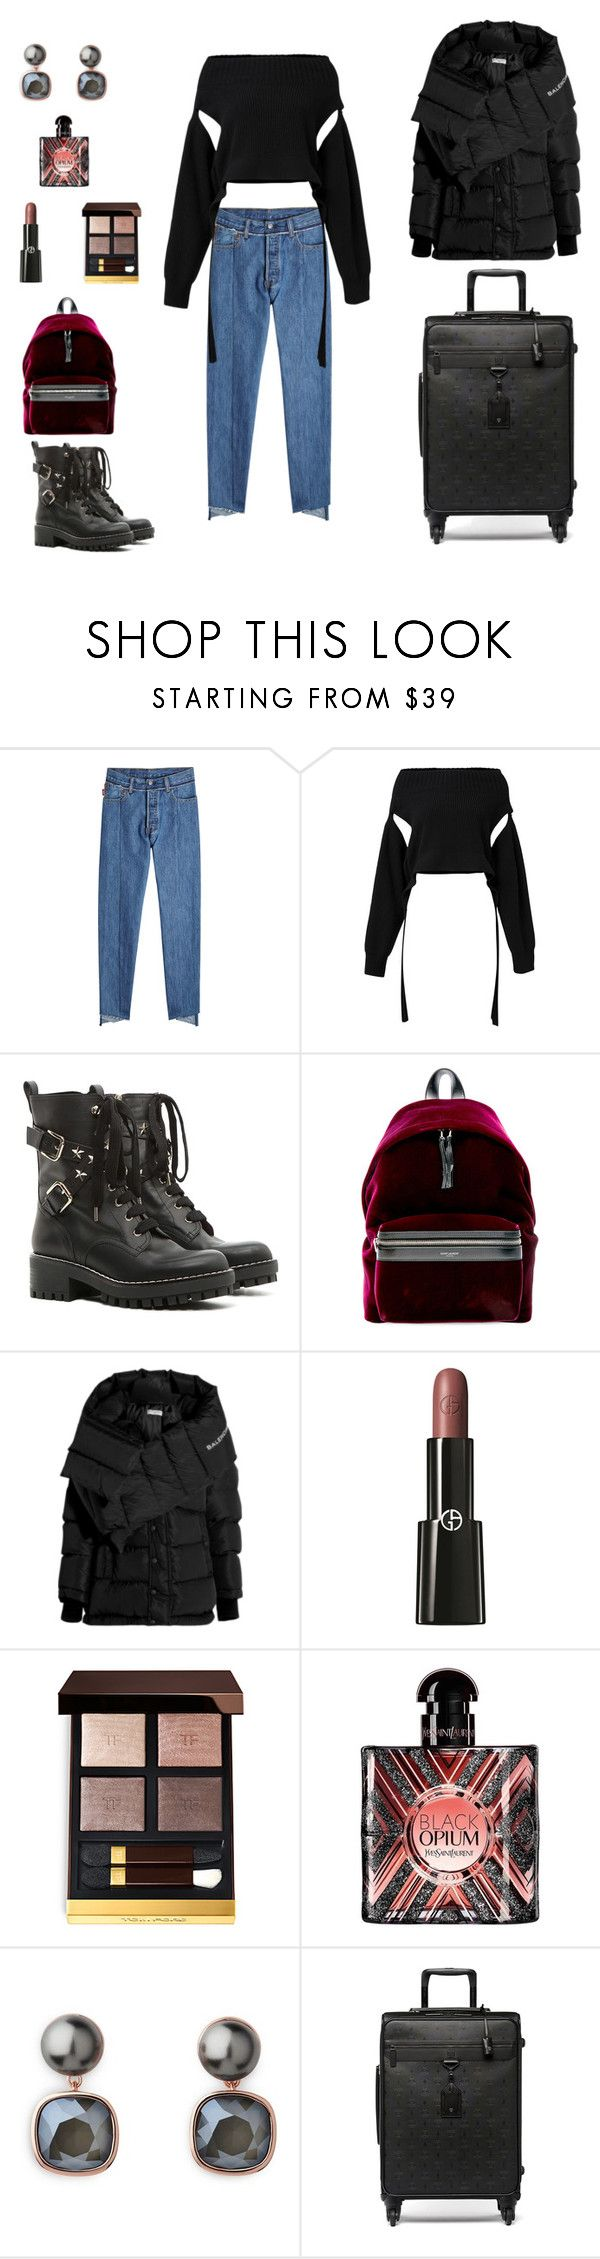 """""""#10.01.18 airport 🛬 Moscow 🇷🇺"""" by thedustyroses ❤ liked on Polyvore featuring Vetements, Dorothee Schumacher, RED Valentino, Yves Saint Laurent, Balenciaga, Giorgio Armani and MCM"""